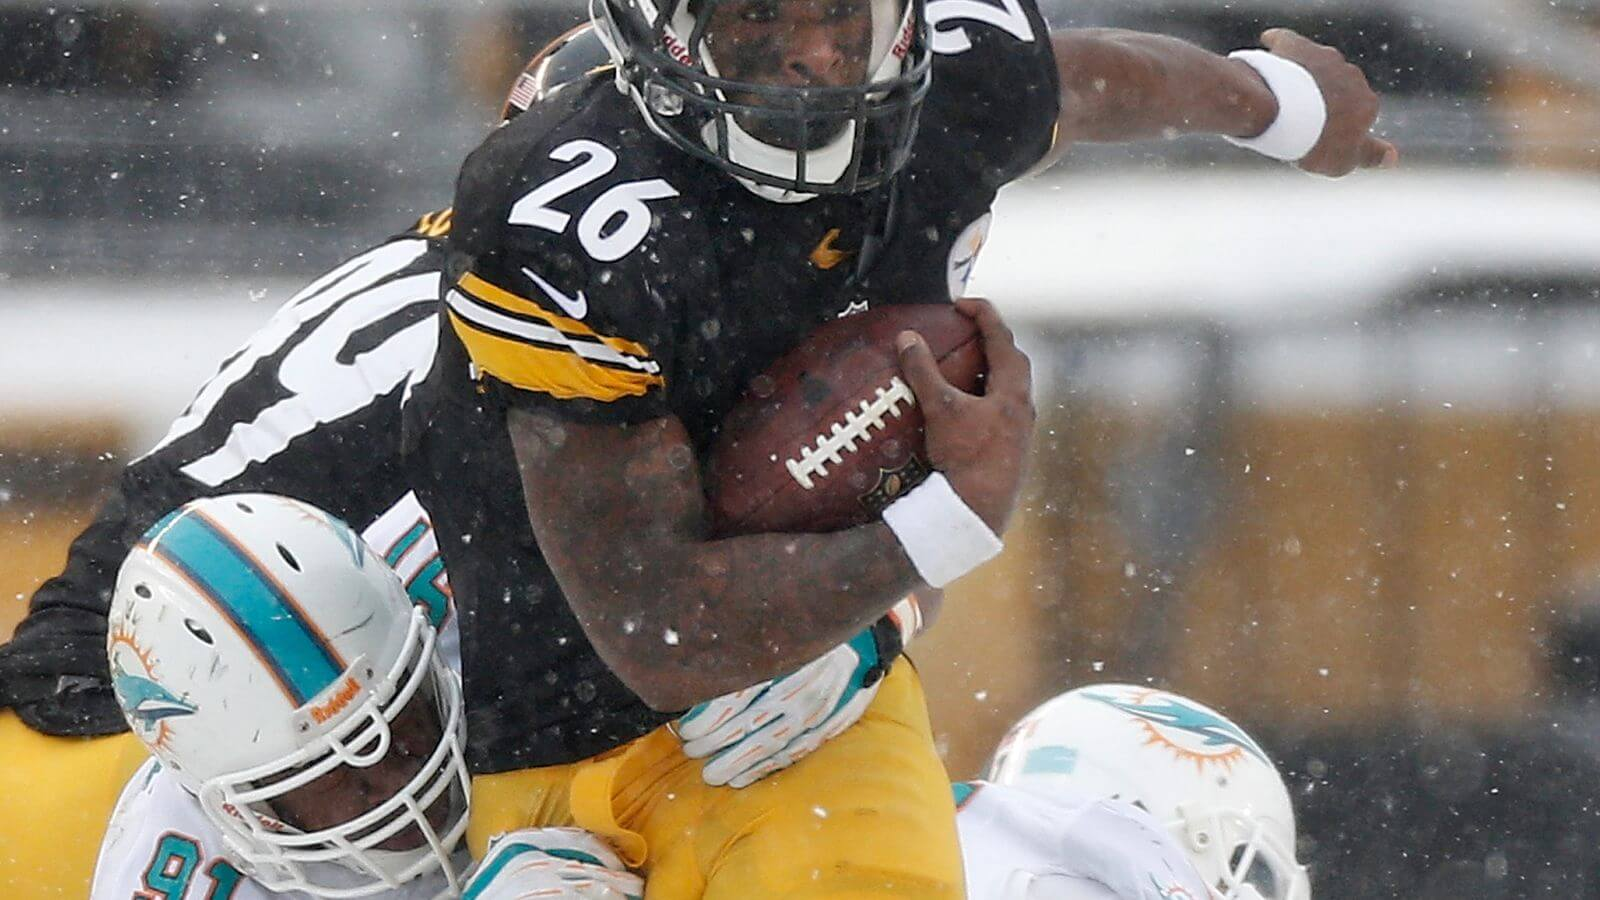 Dolphins vs Steelers NFL Betting Odds